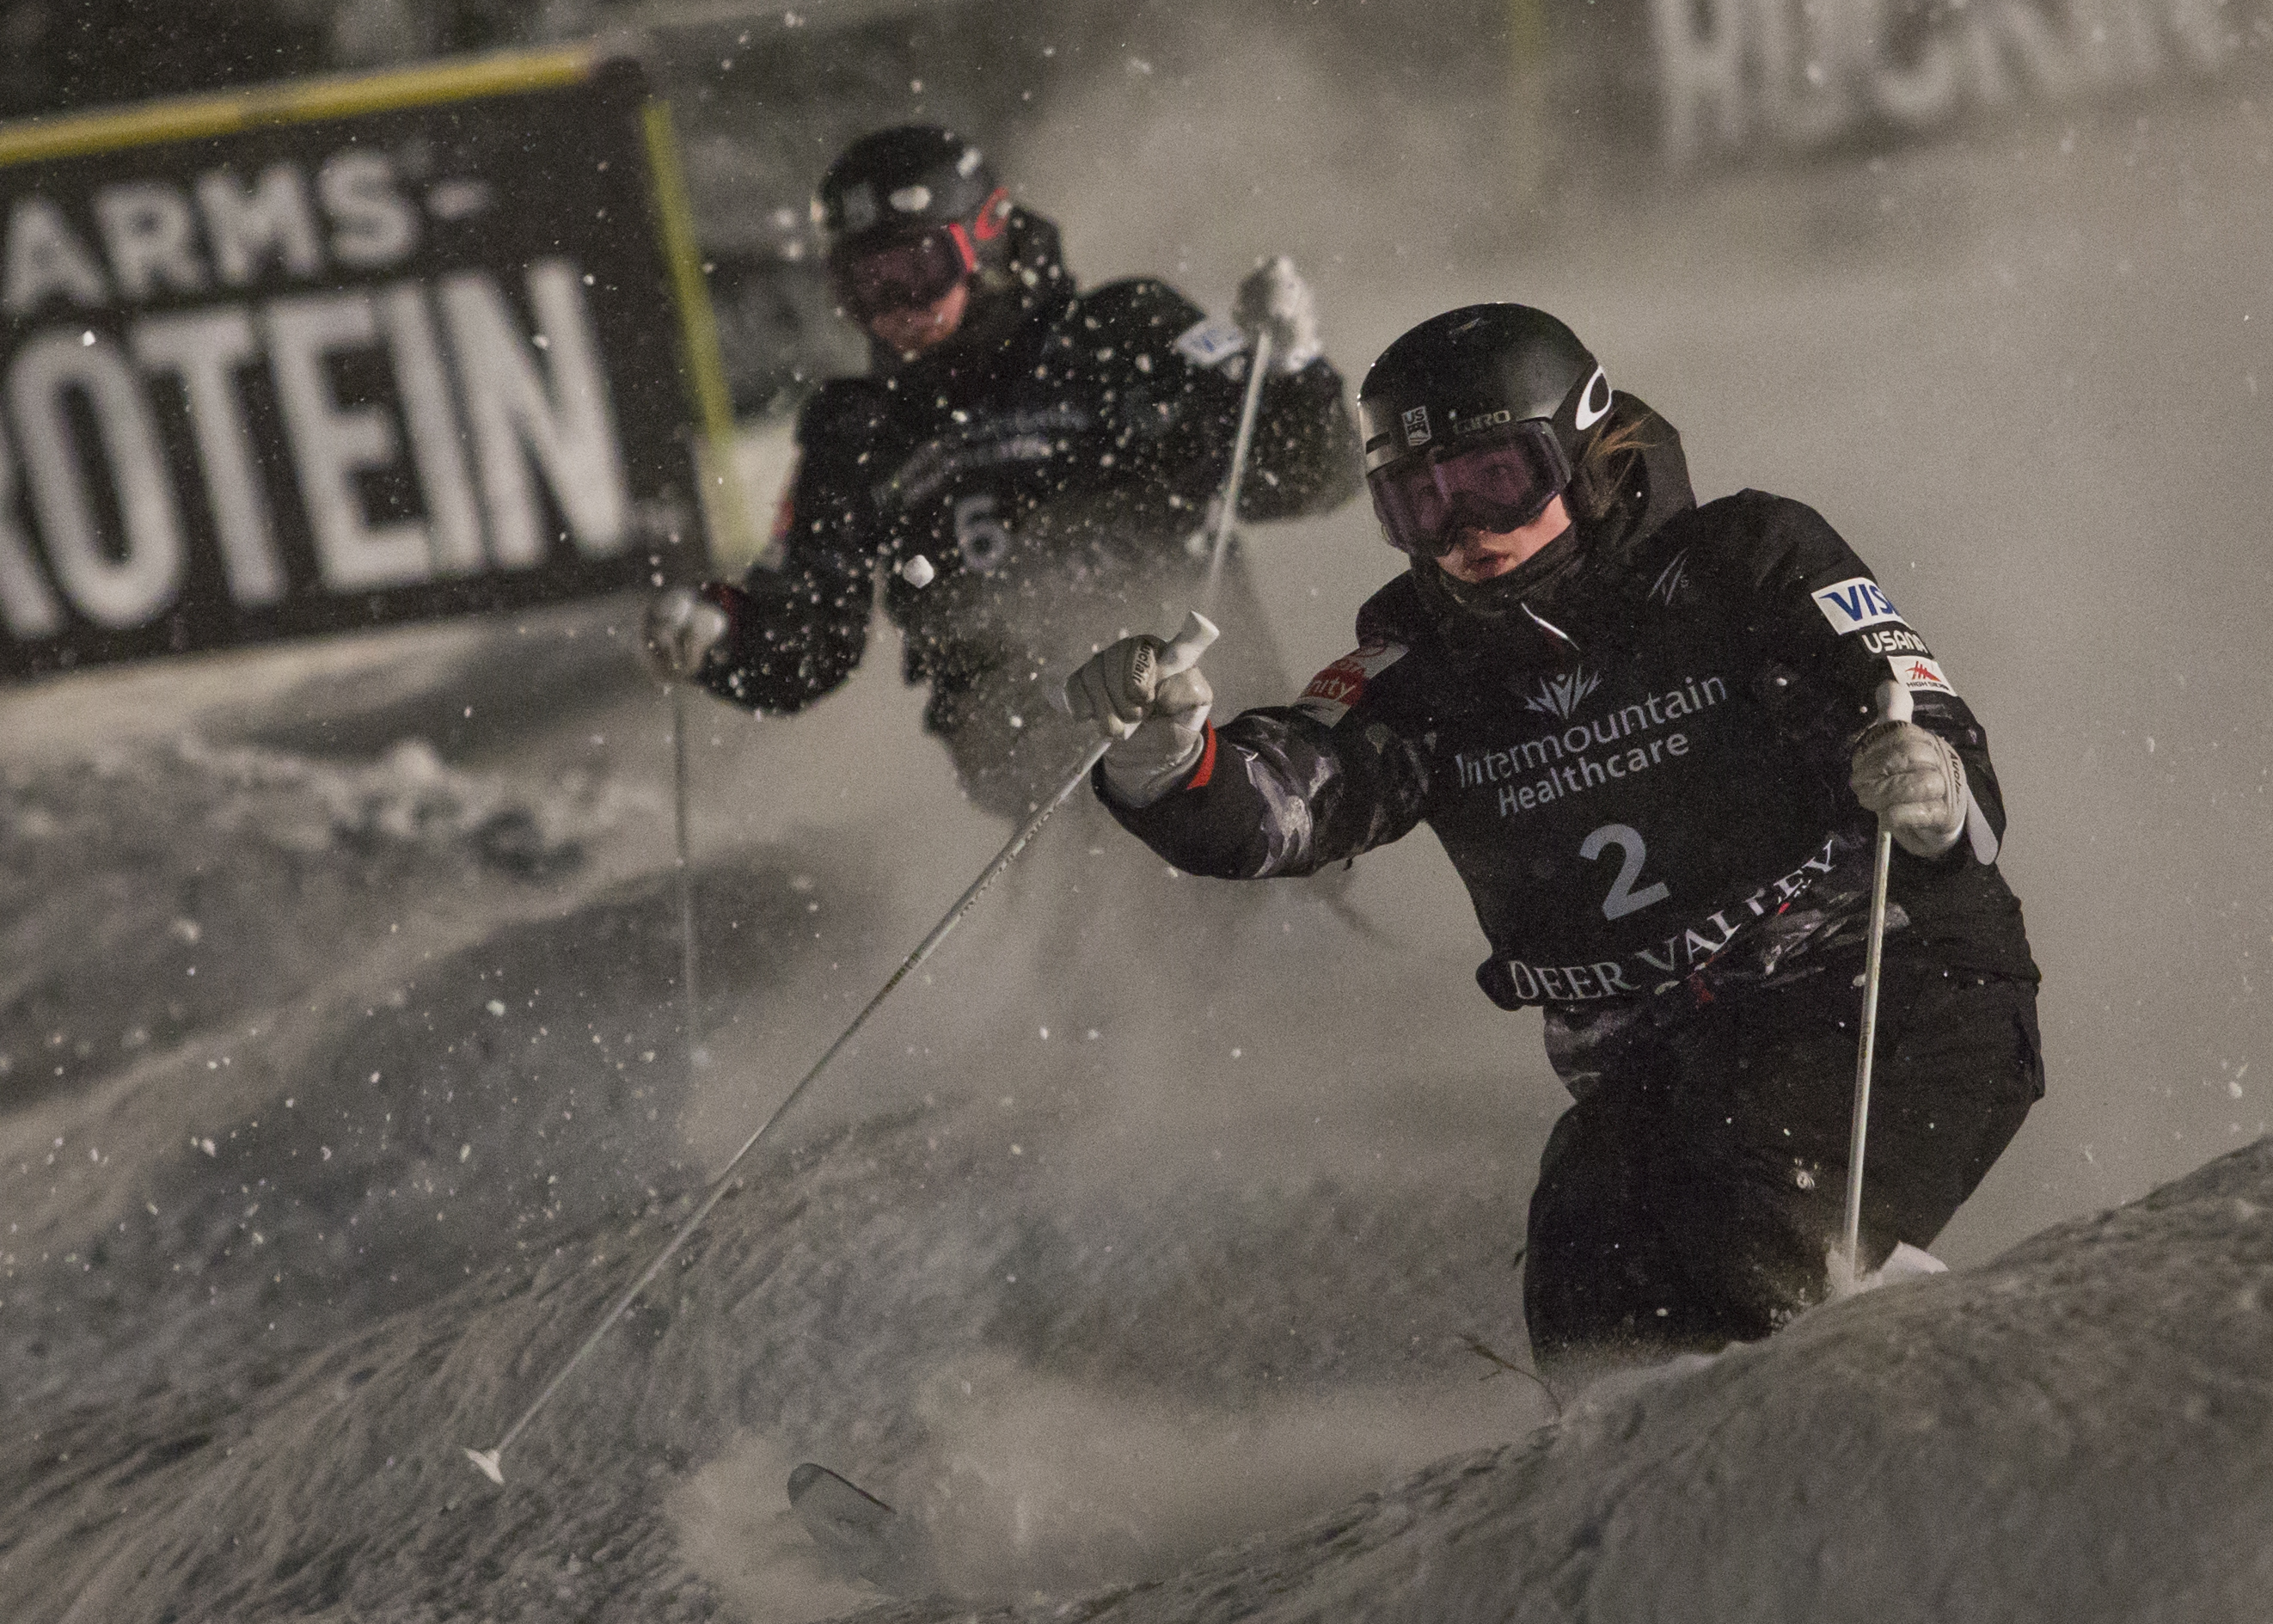 Freestyle World Cup confirmed to return to Deer Valley in 2020